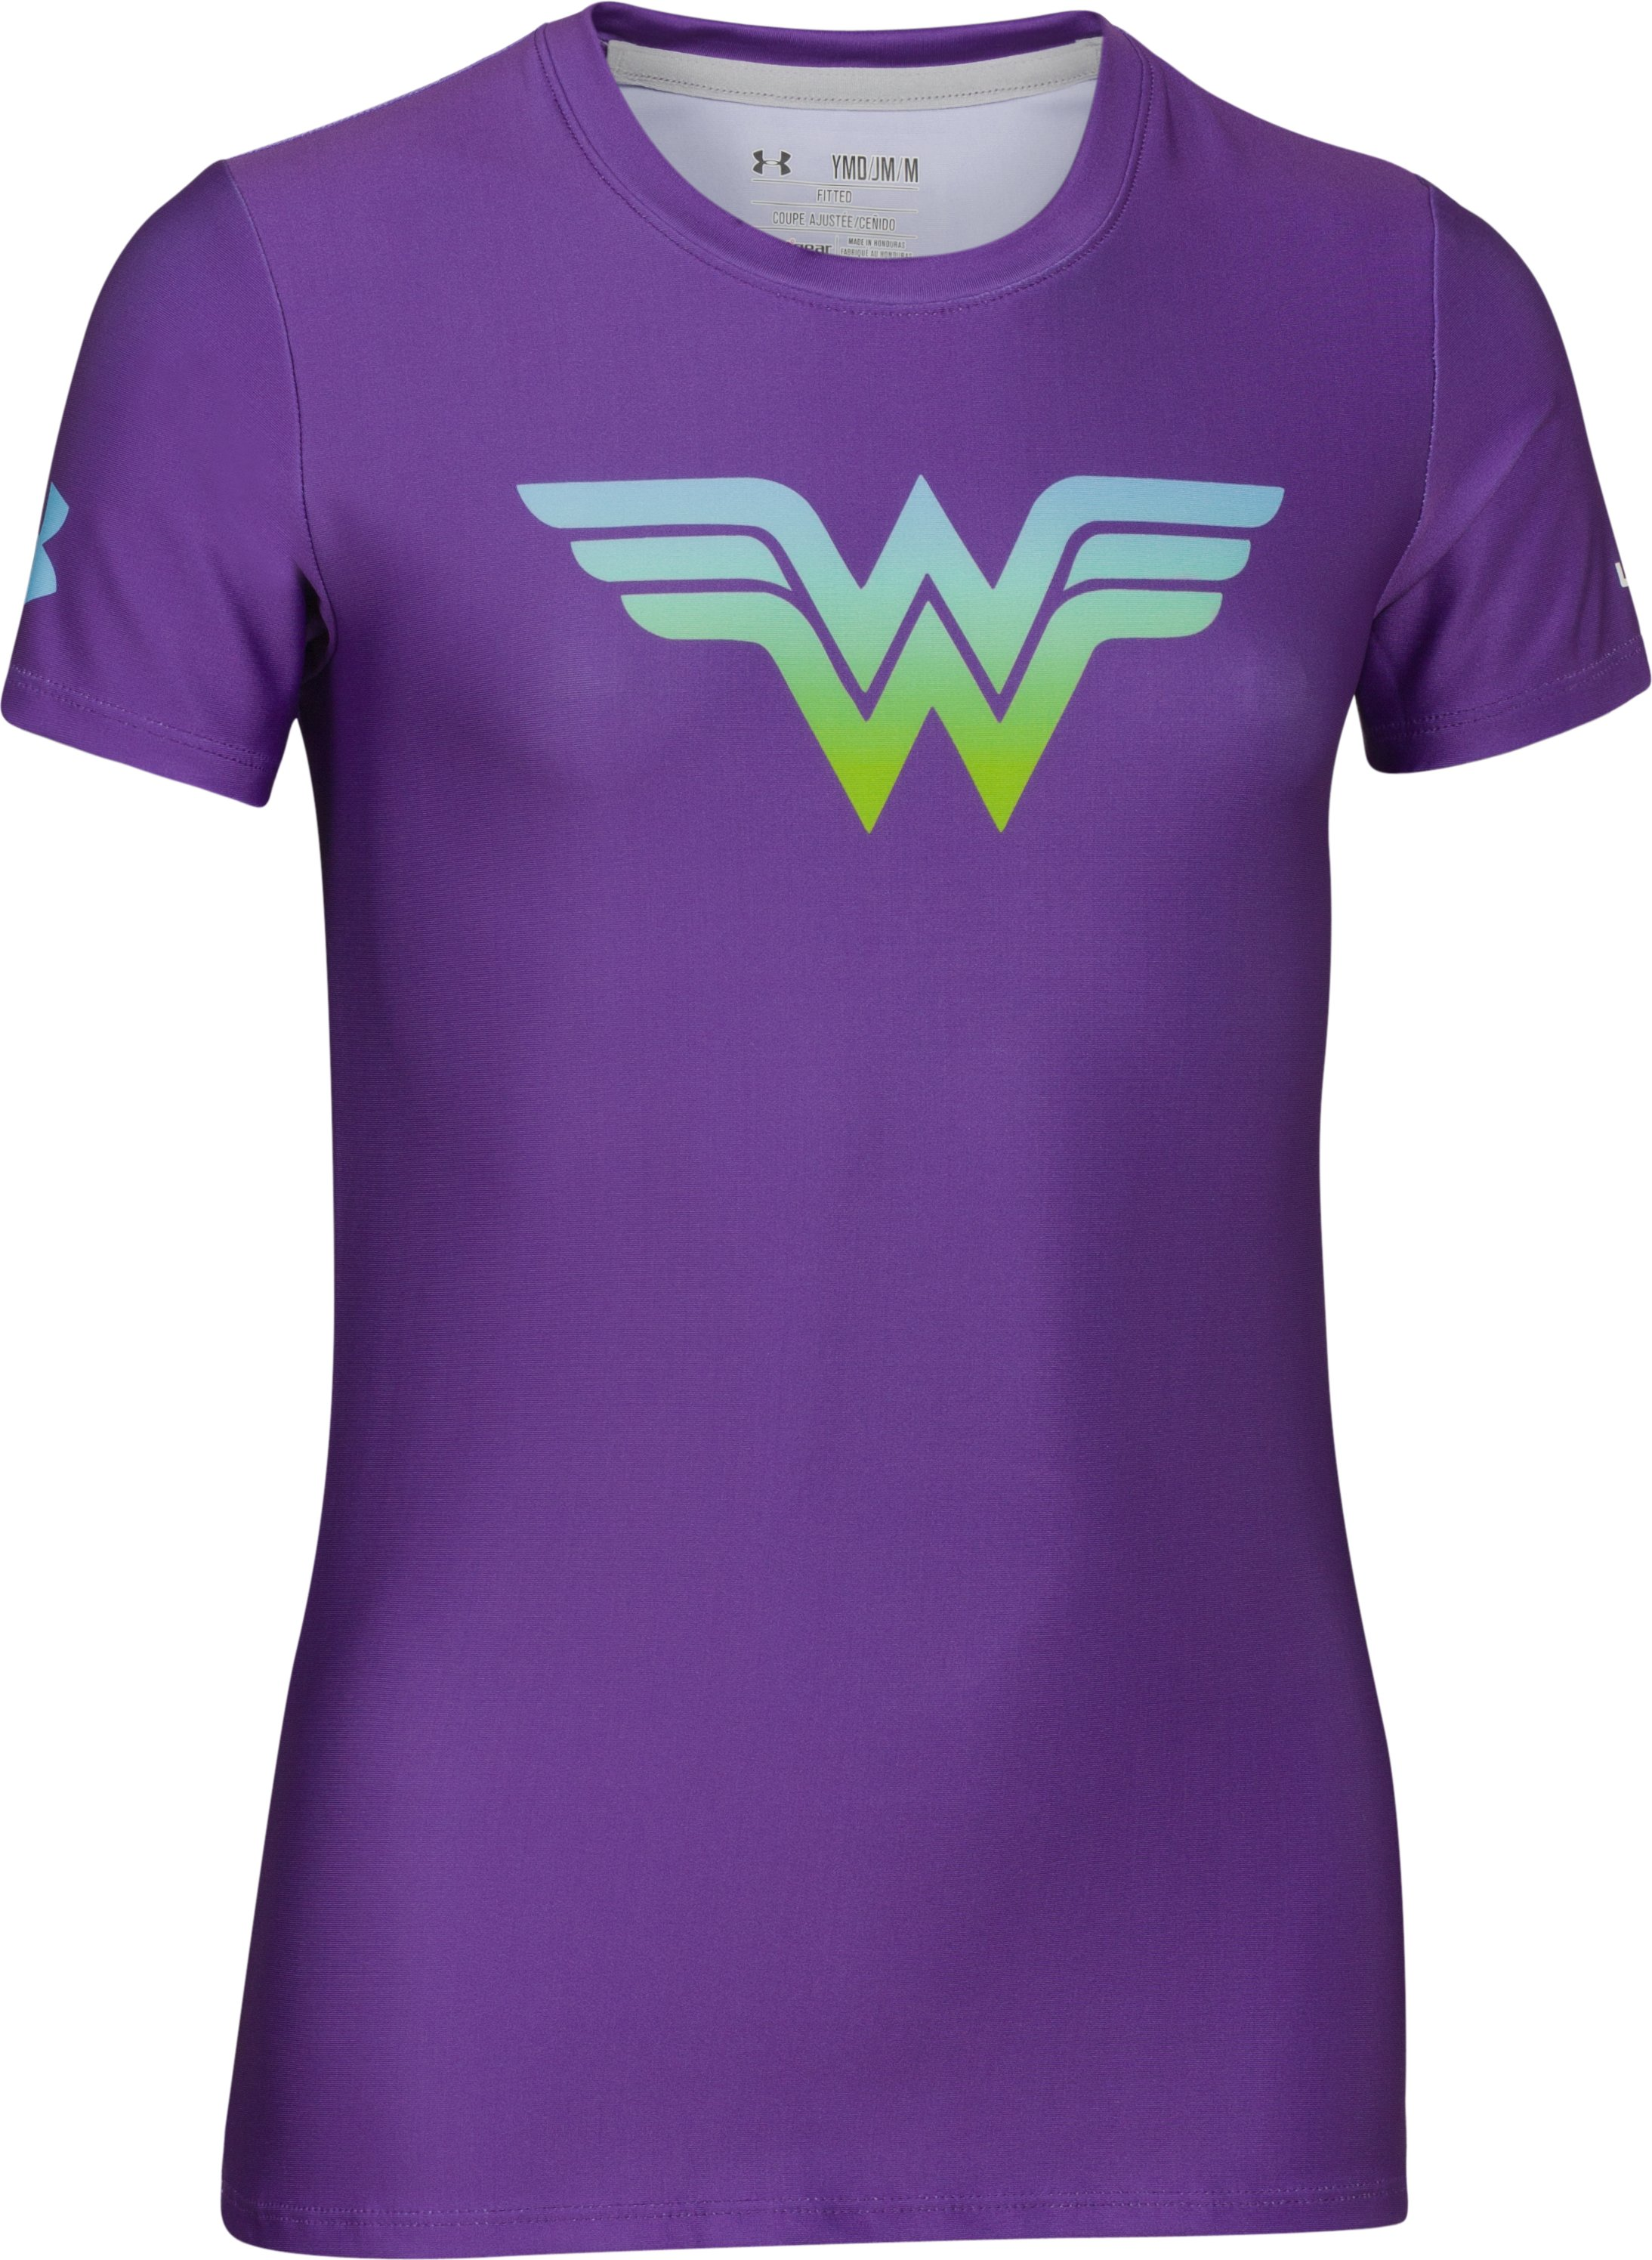 Girls' HeatGear® Sonic Wonder Woman Short Sleeve, PRIDE, zoomed image